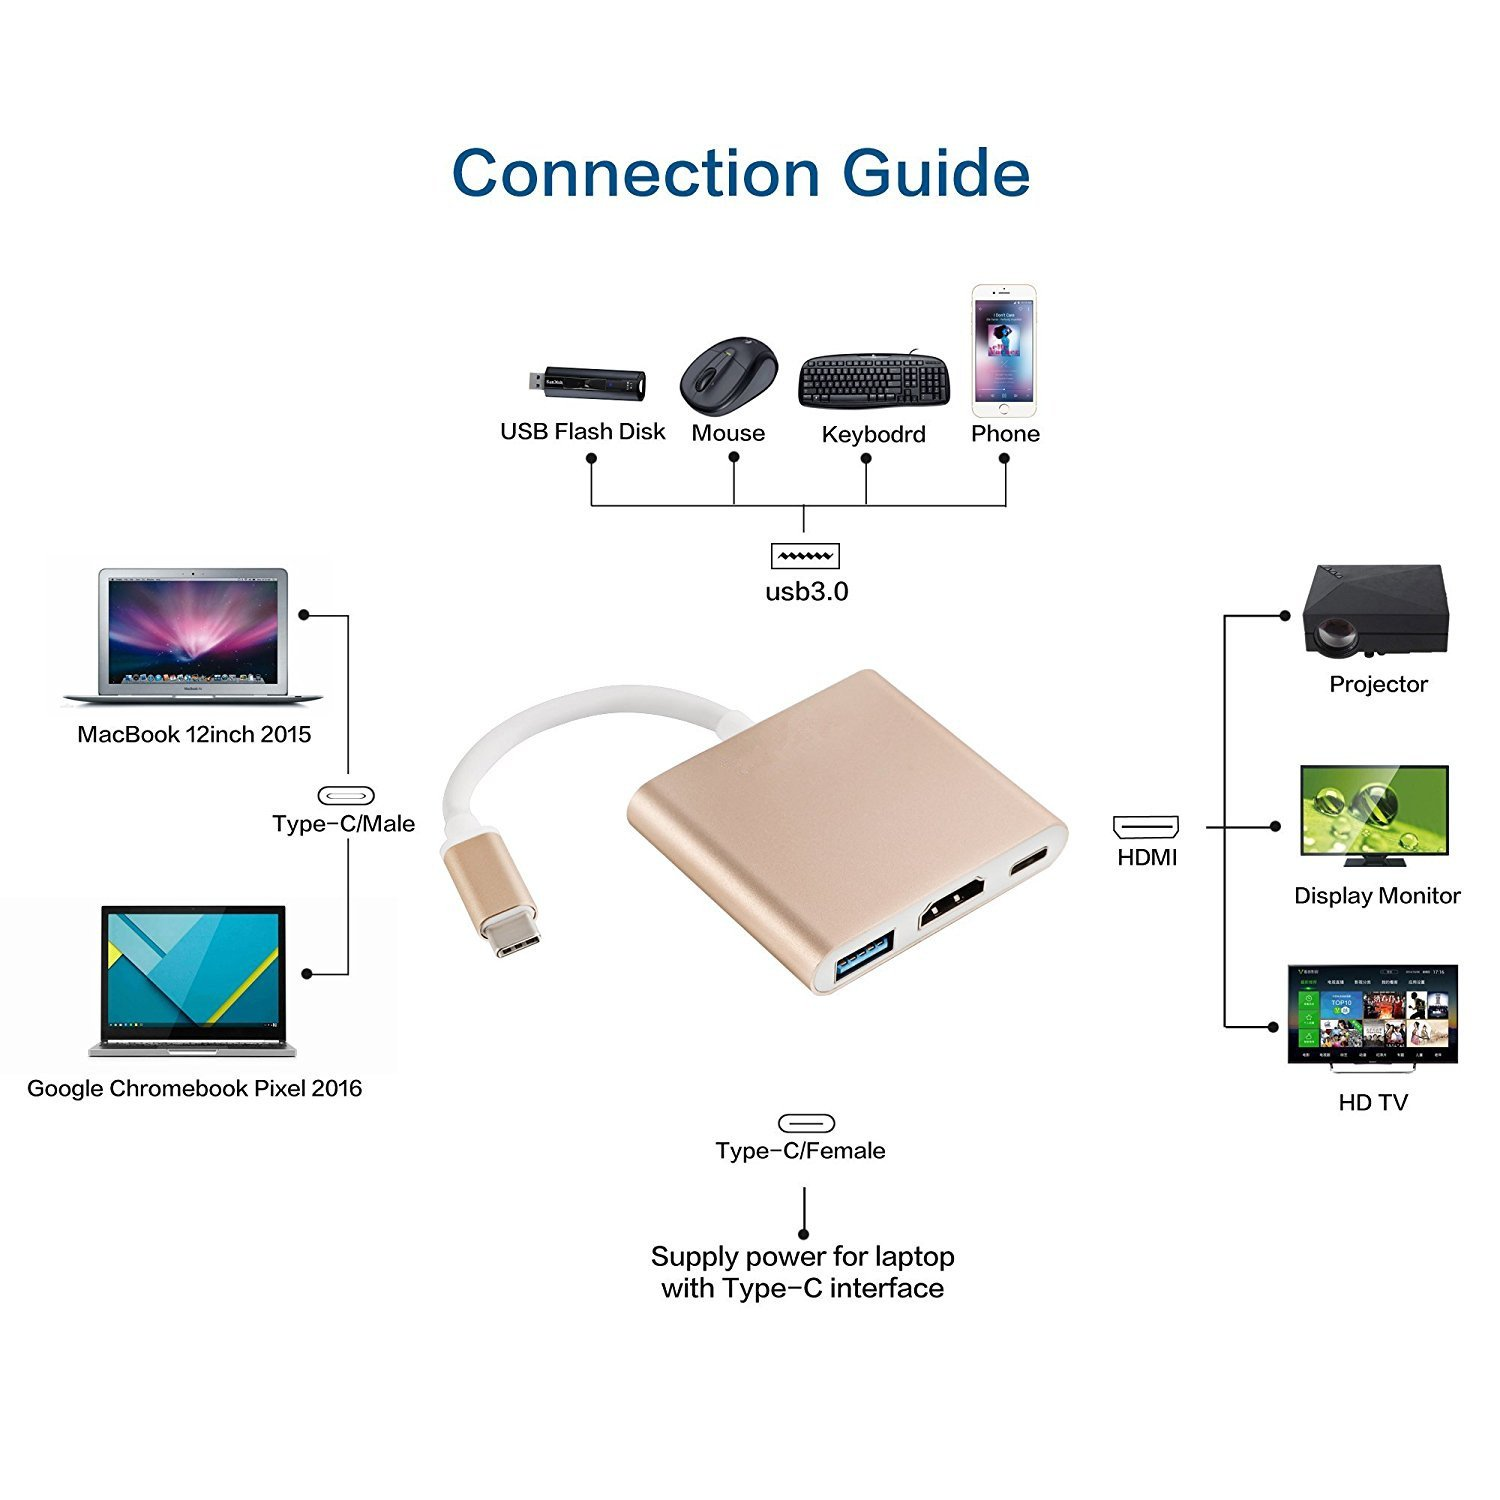 USB C to HDMI/USB3.0/USB-C Female 3 in 1 Adapter,Vekey USB 3.1 Type C to HDMI Converter with USB 3.0 Port & USB C Recharging Port for Apple MacBook ...